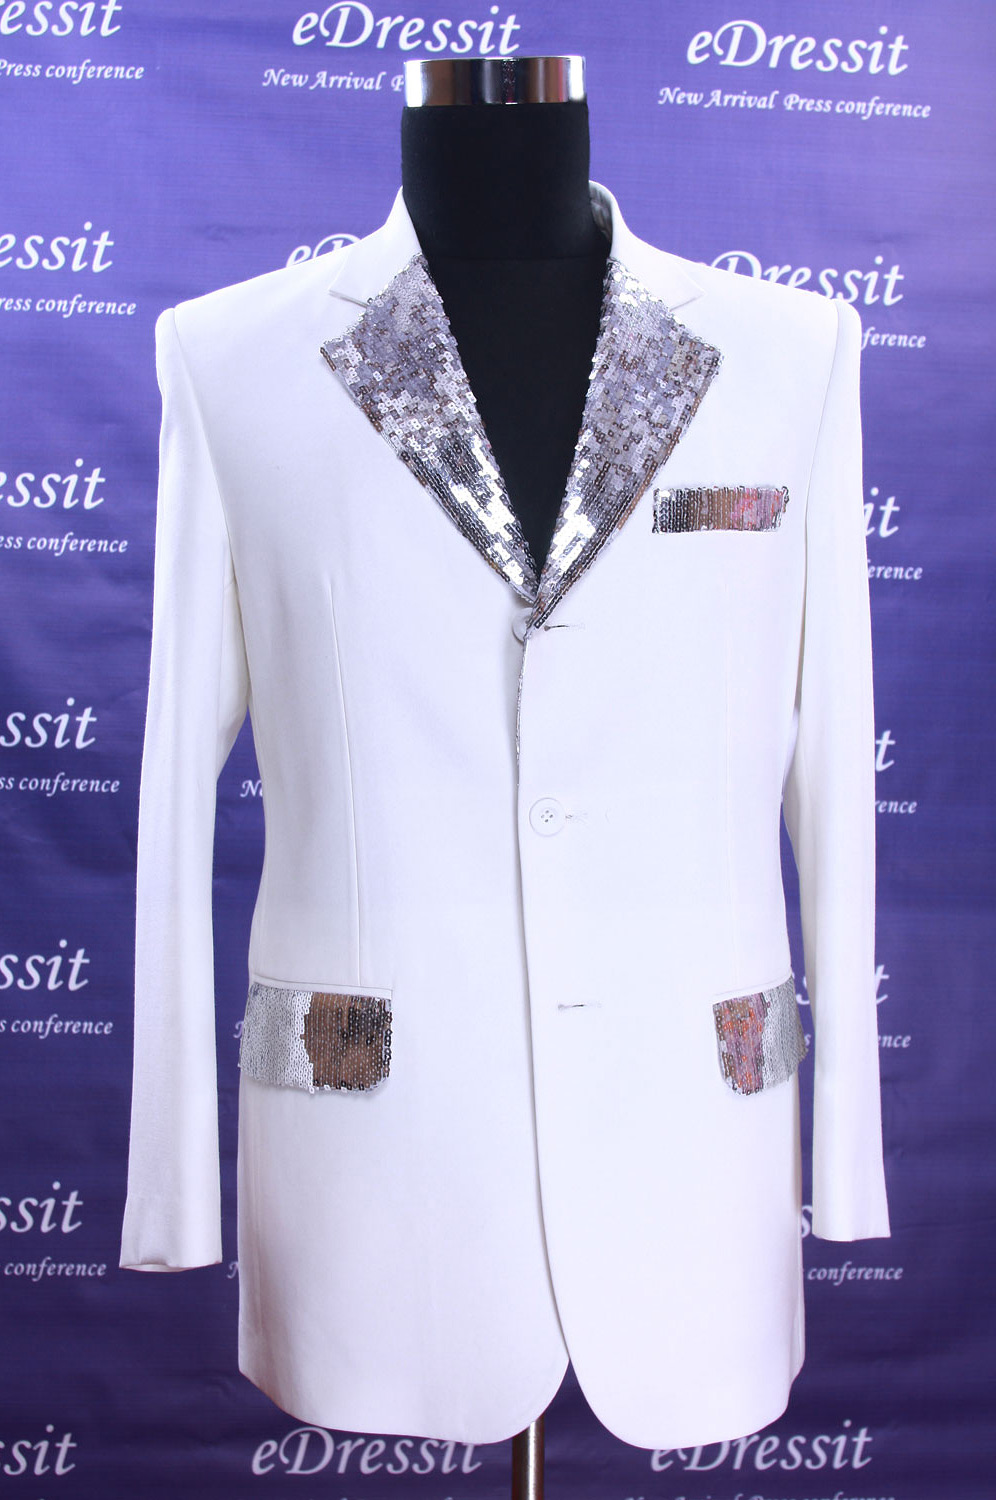 eDressit Men Suits/Tuxedo/Dinner Jacket Made Measure (15090207)